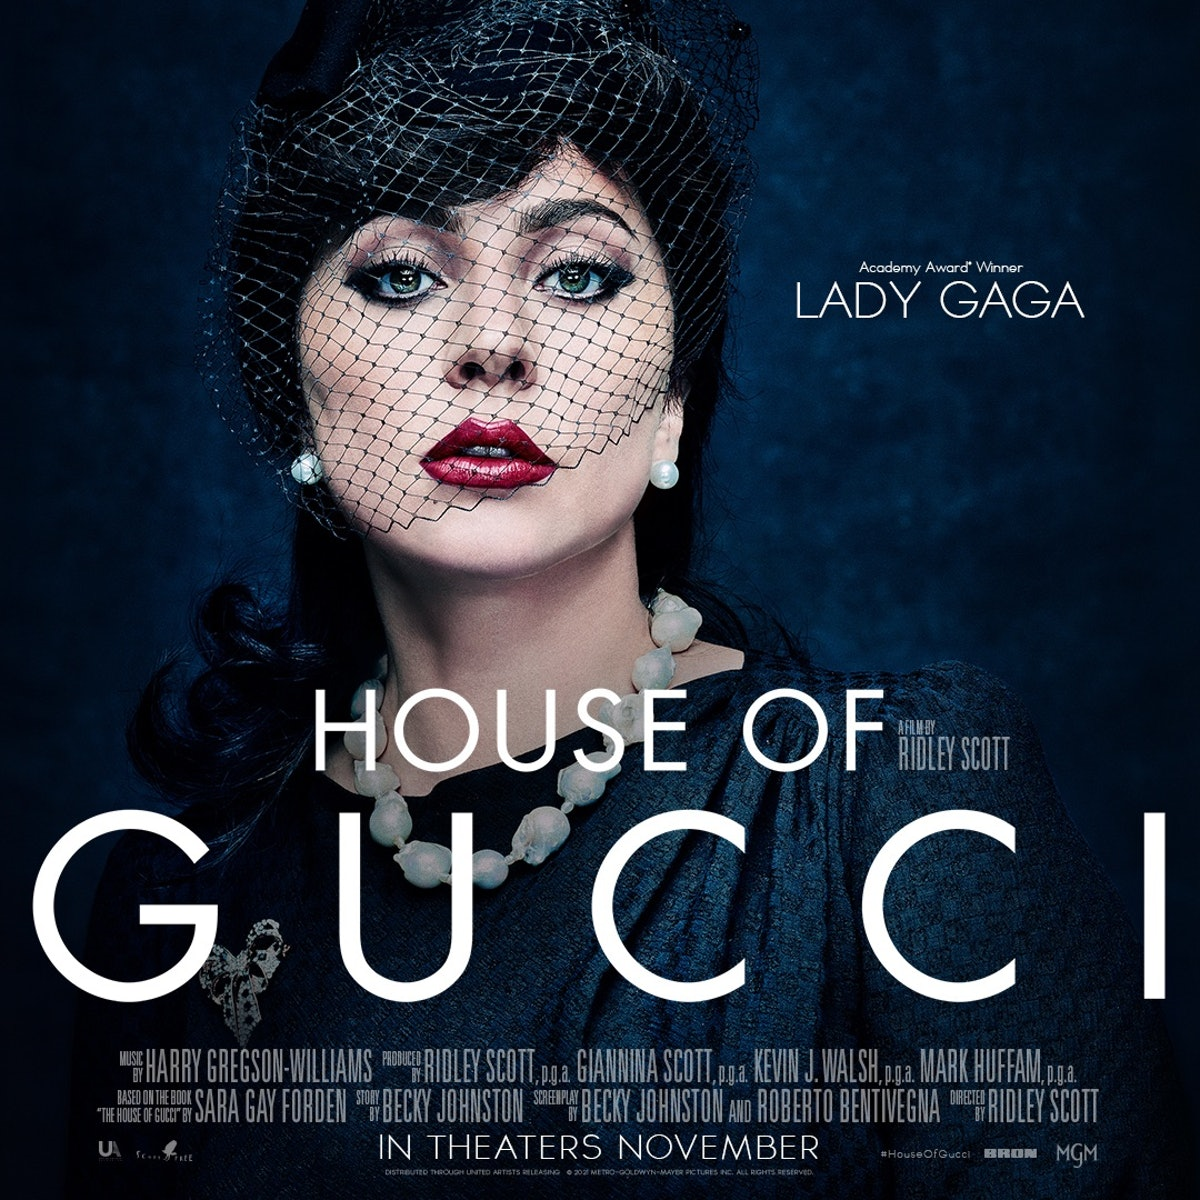 Lady Gaga in House of Gucci poster.